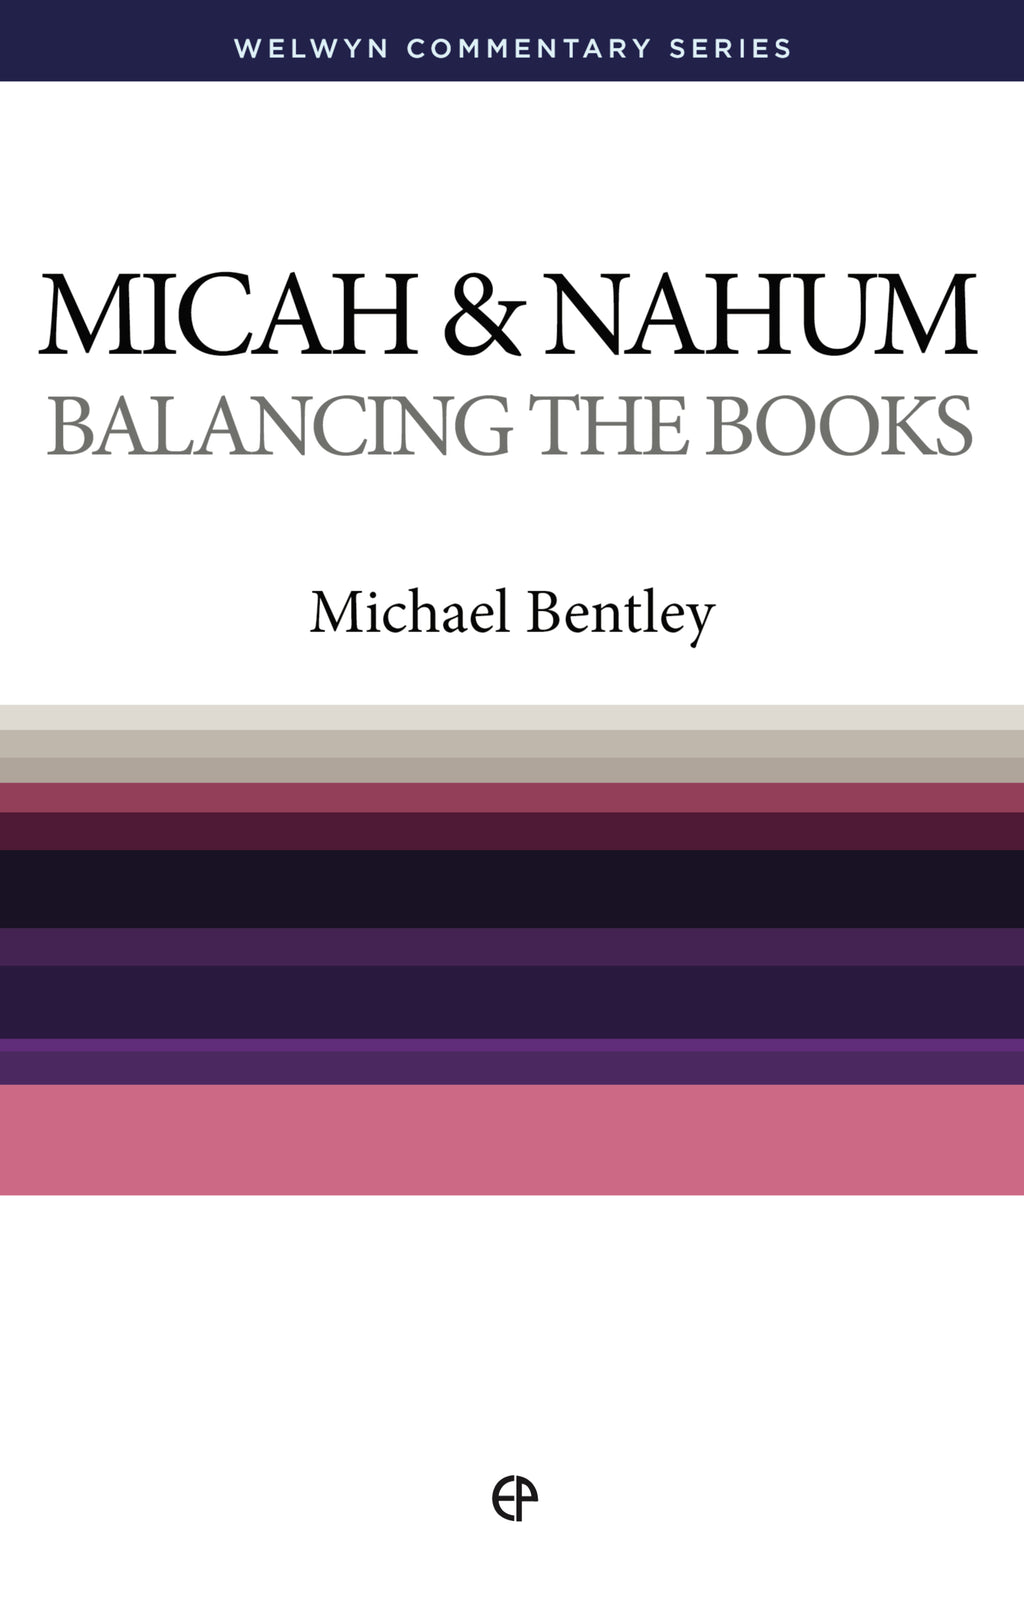 WCS Micah & Nahum - Balancing the Books